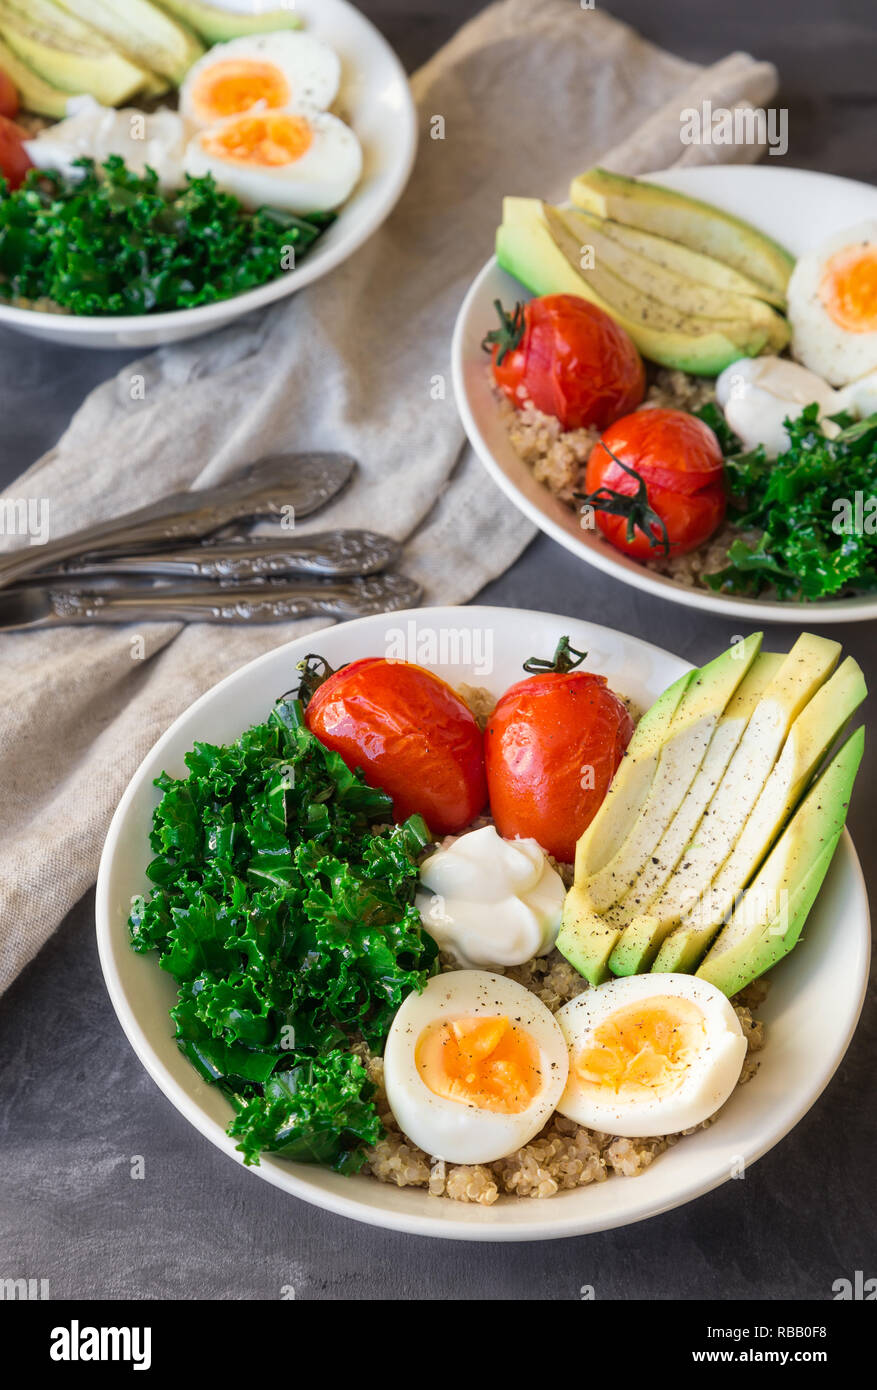 Quinoa buddha bowls with baked tomatoes, avocado, kale, boiled eggs and greek yogurt on gray concrete background. Healthy breakfast. Selective focus. - Stock Image